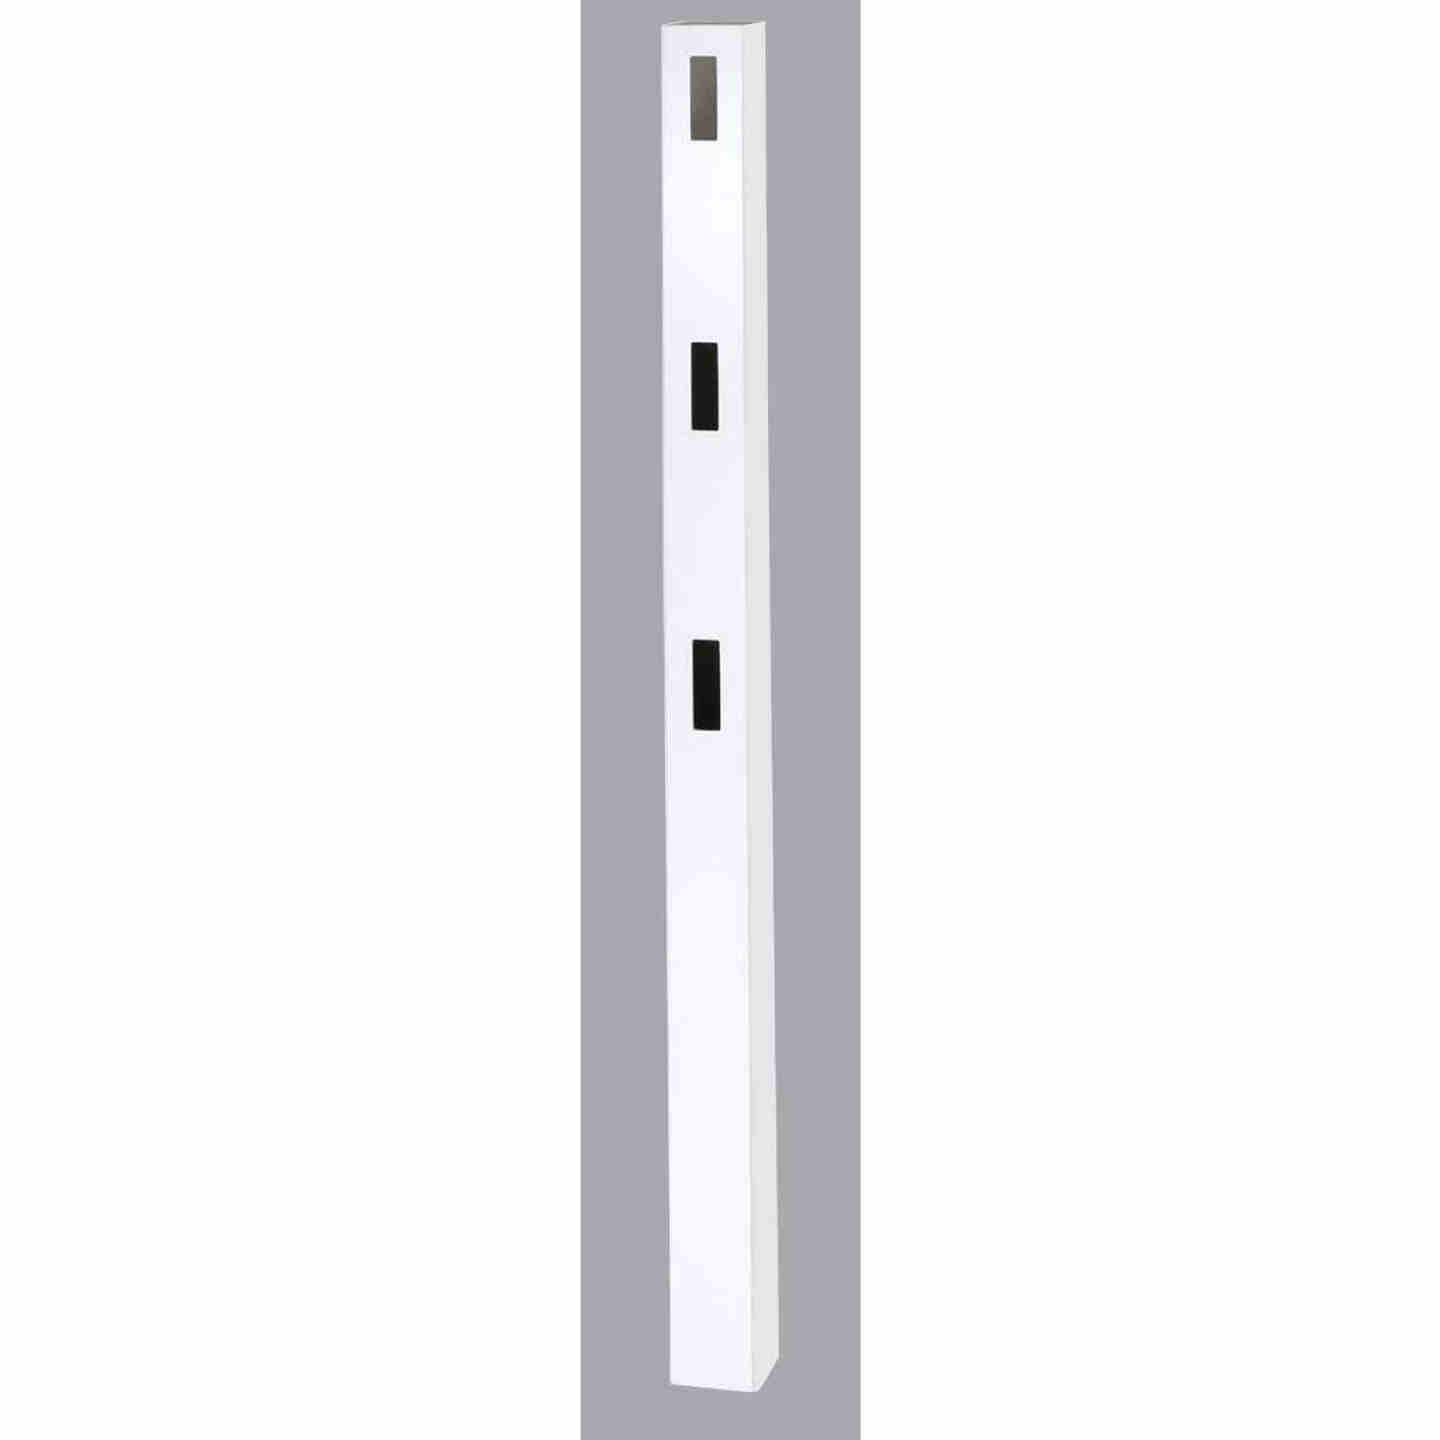 Outdoor Essentials 5 In. x 5 In. x 84 In. White Line 3-Rail Fence Vinyl Post Image 1